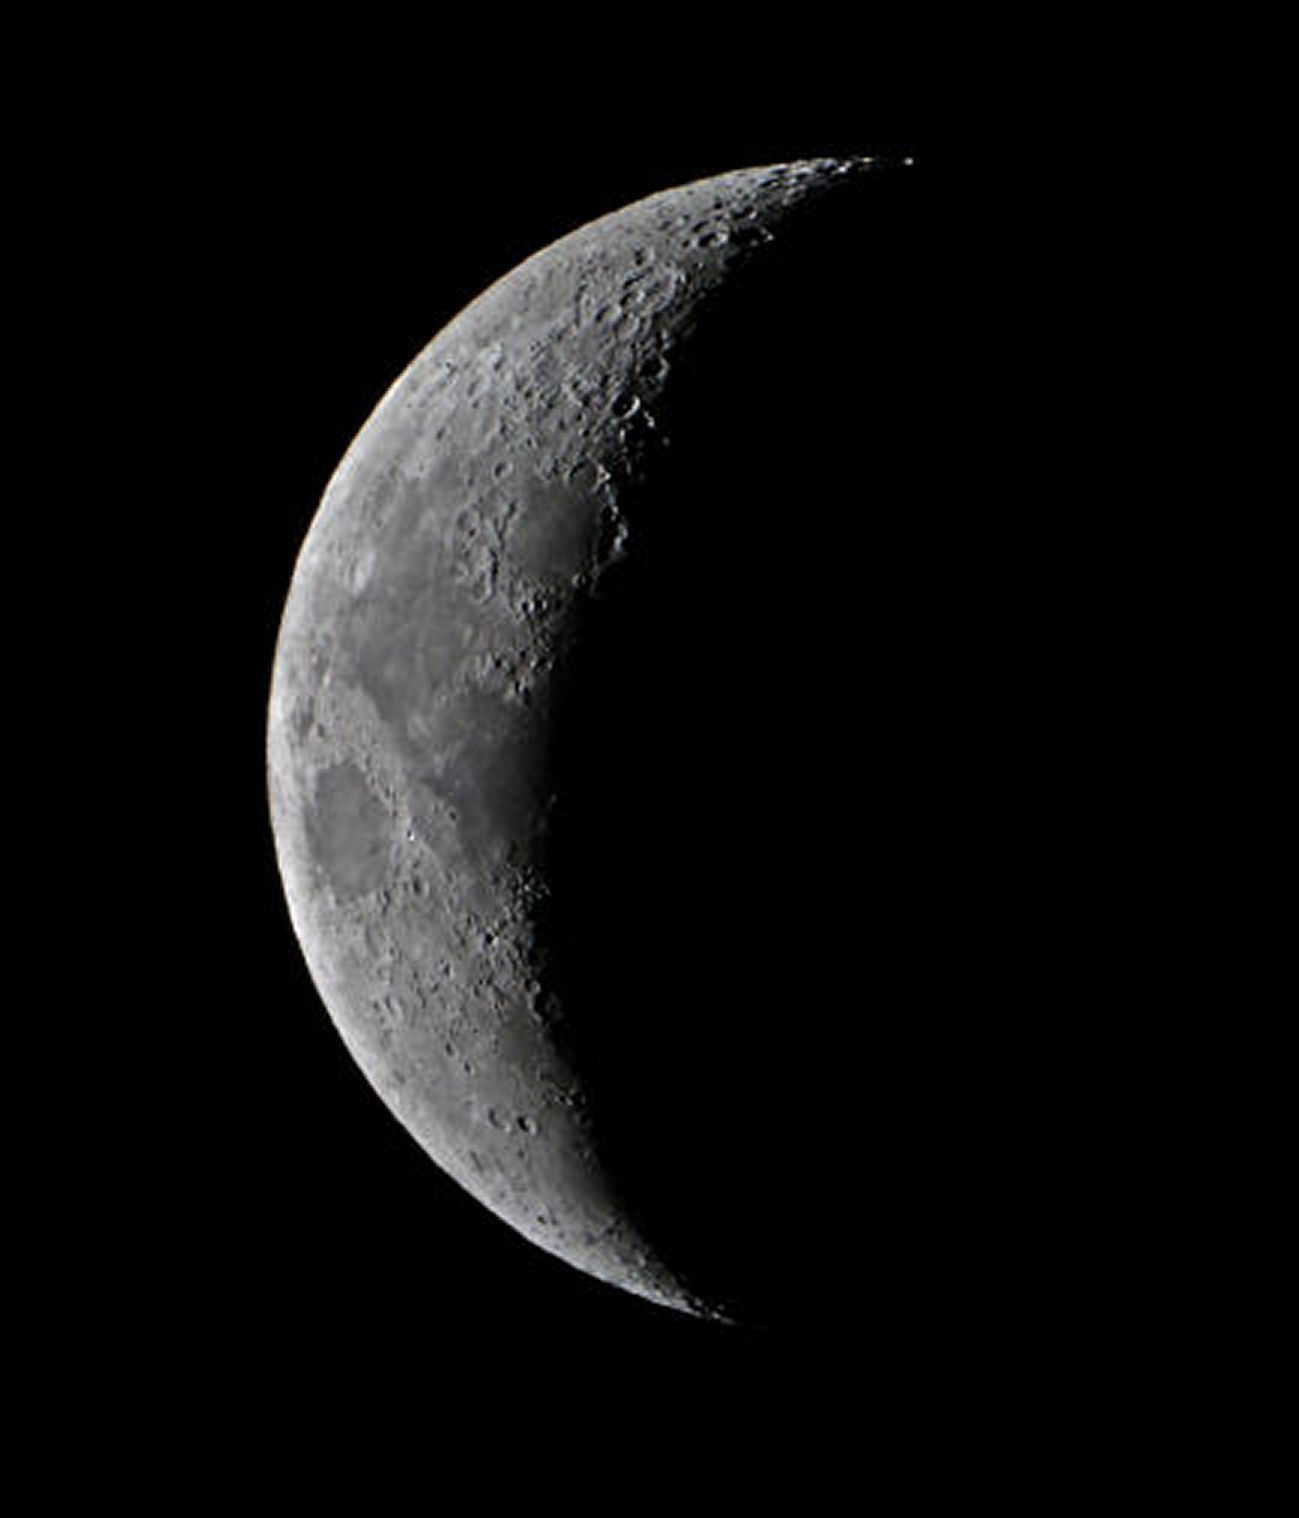 Moon by Ken Kennedy 14.01.2016  8.08. Camera Canon EOS100d 1/100sec.  ISO-800. Compare this to the next picture by Tony taken almost 3 hours earlier in daylight.